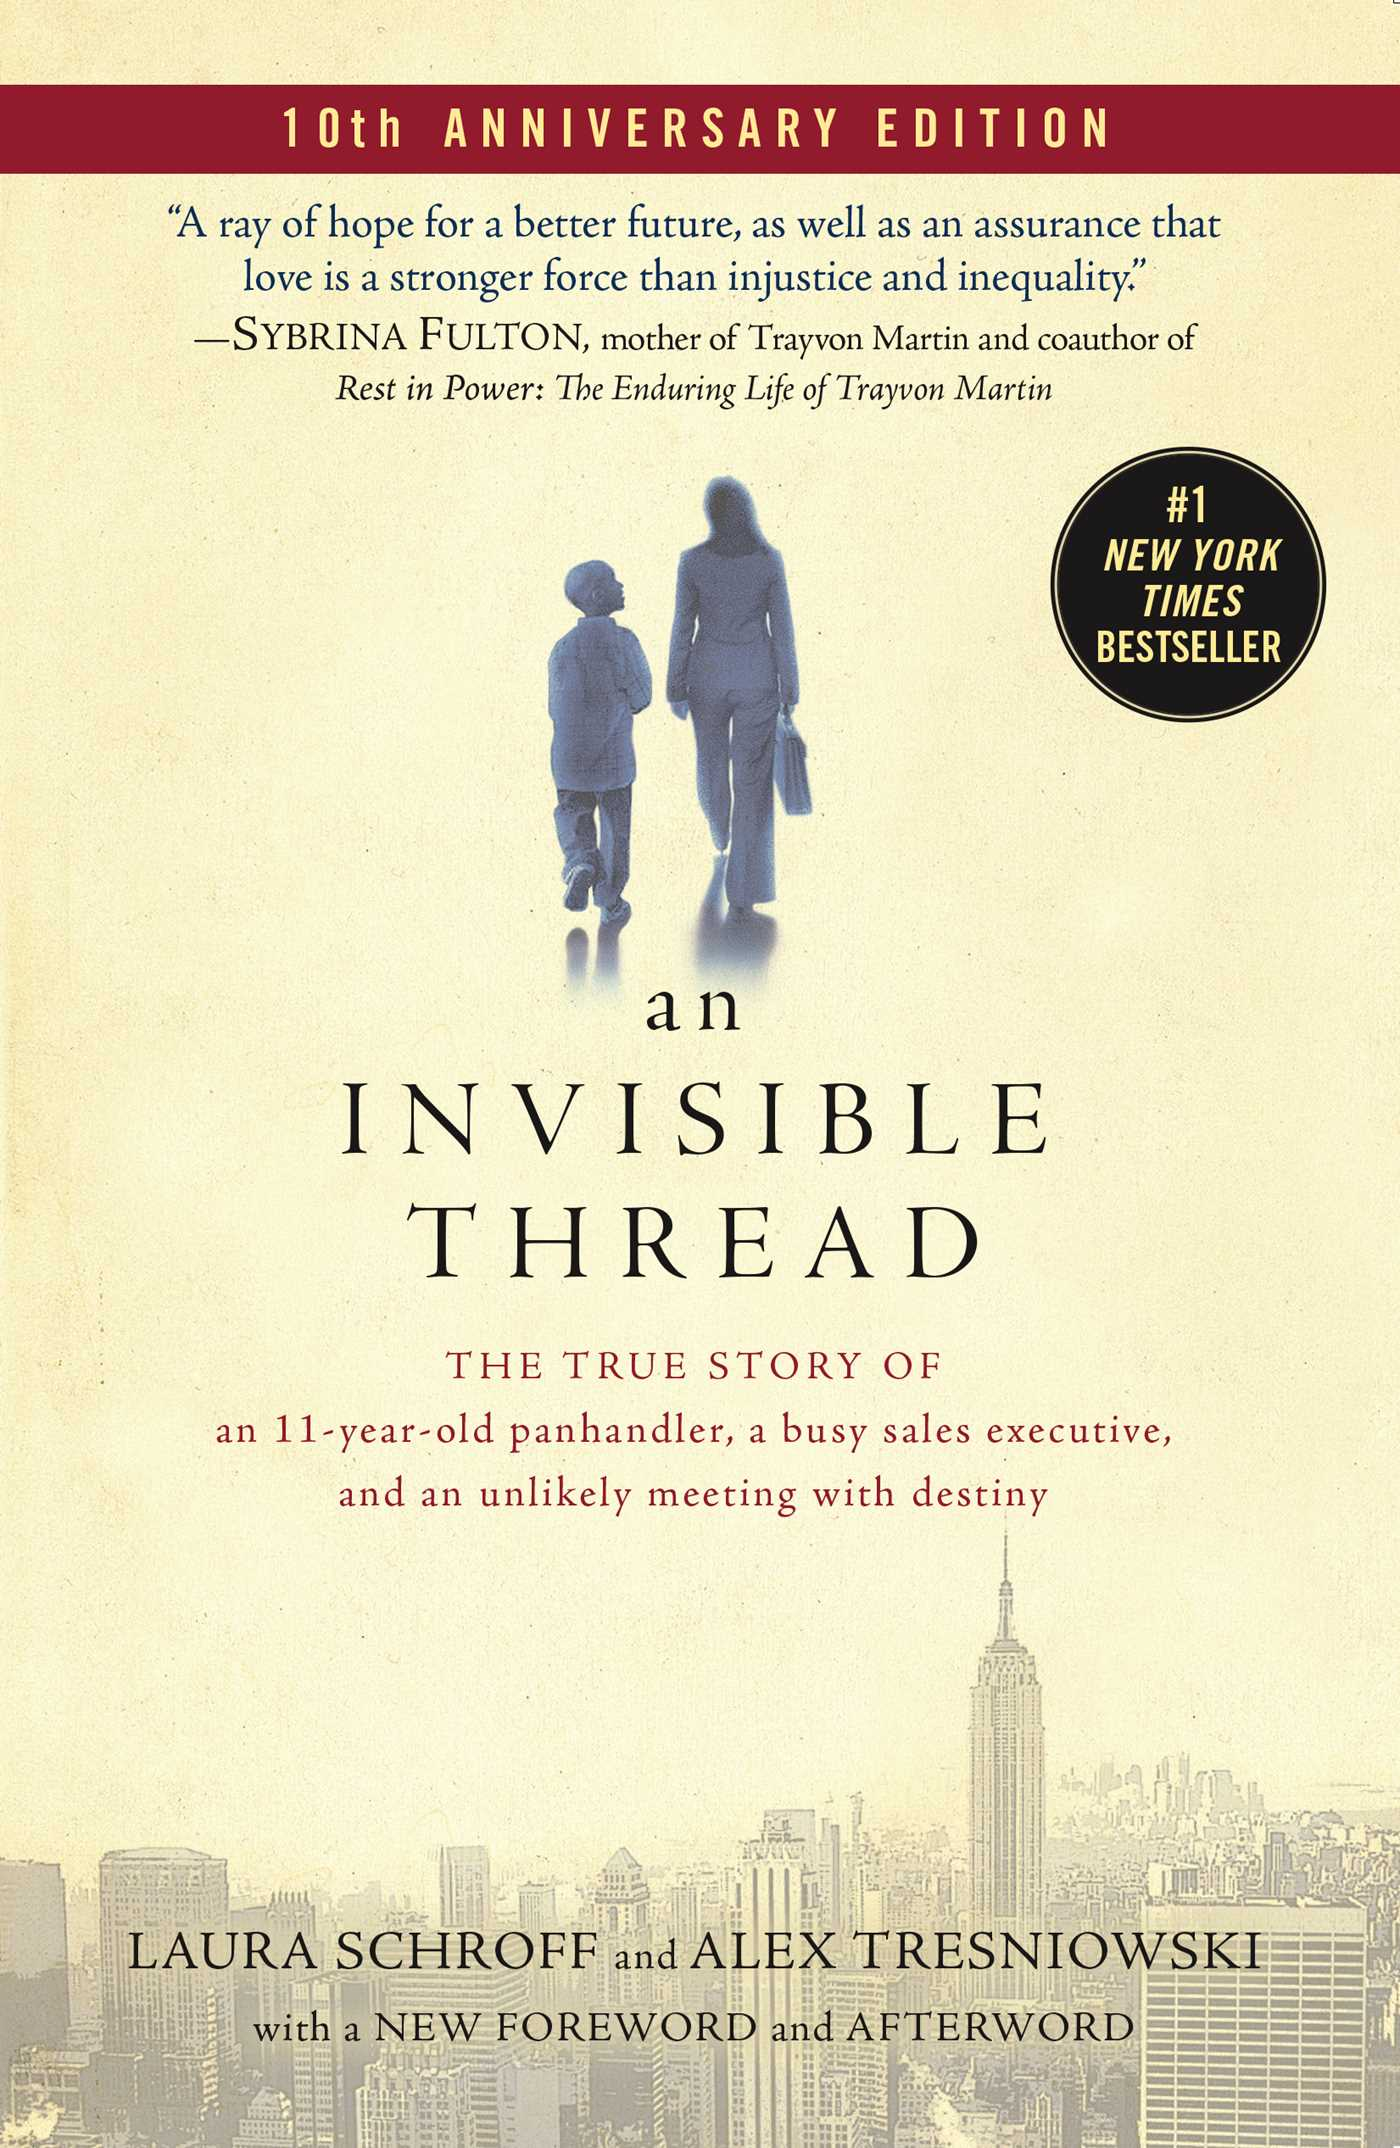 An Invisible Thread [electronic resource (downloadable eBook)] : the True Story of an 11-Year-Old Panhandler, a Busy Sales Executive, and an Unlikely Meeting with Destiny